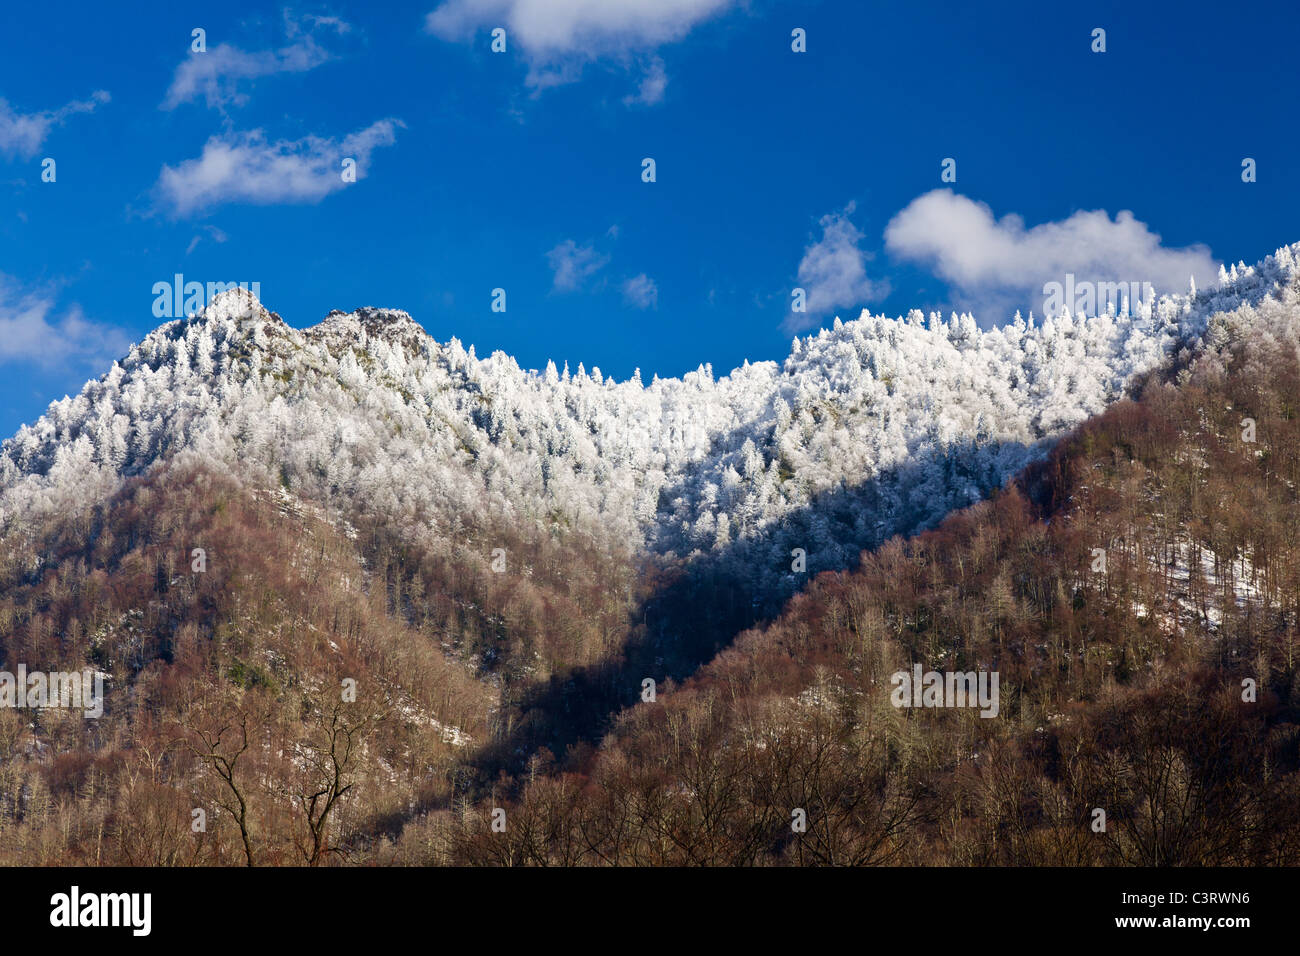 Great Smoky Mountains National Park, USA - view of Chimney Tops covered in snow - Stock Image